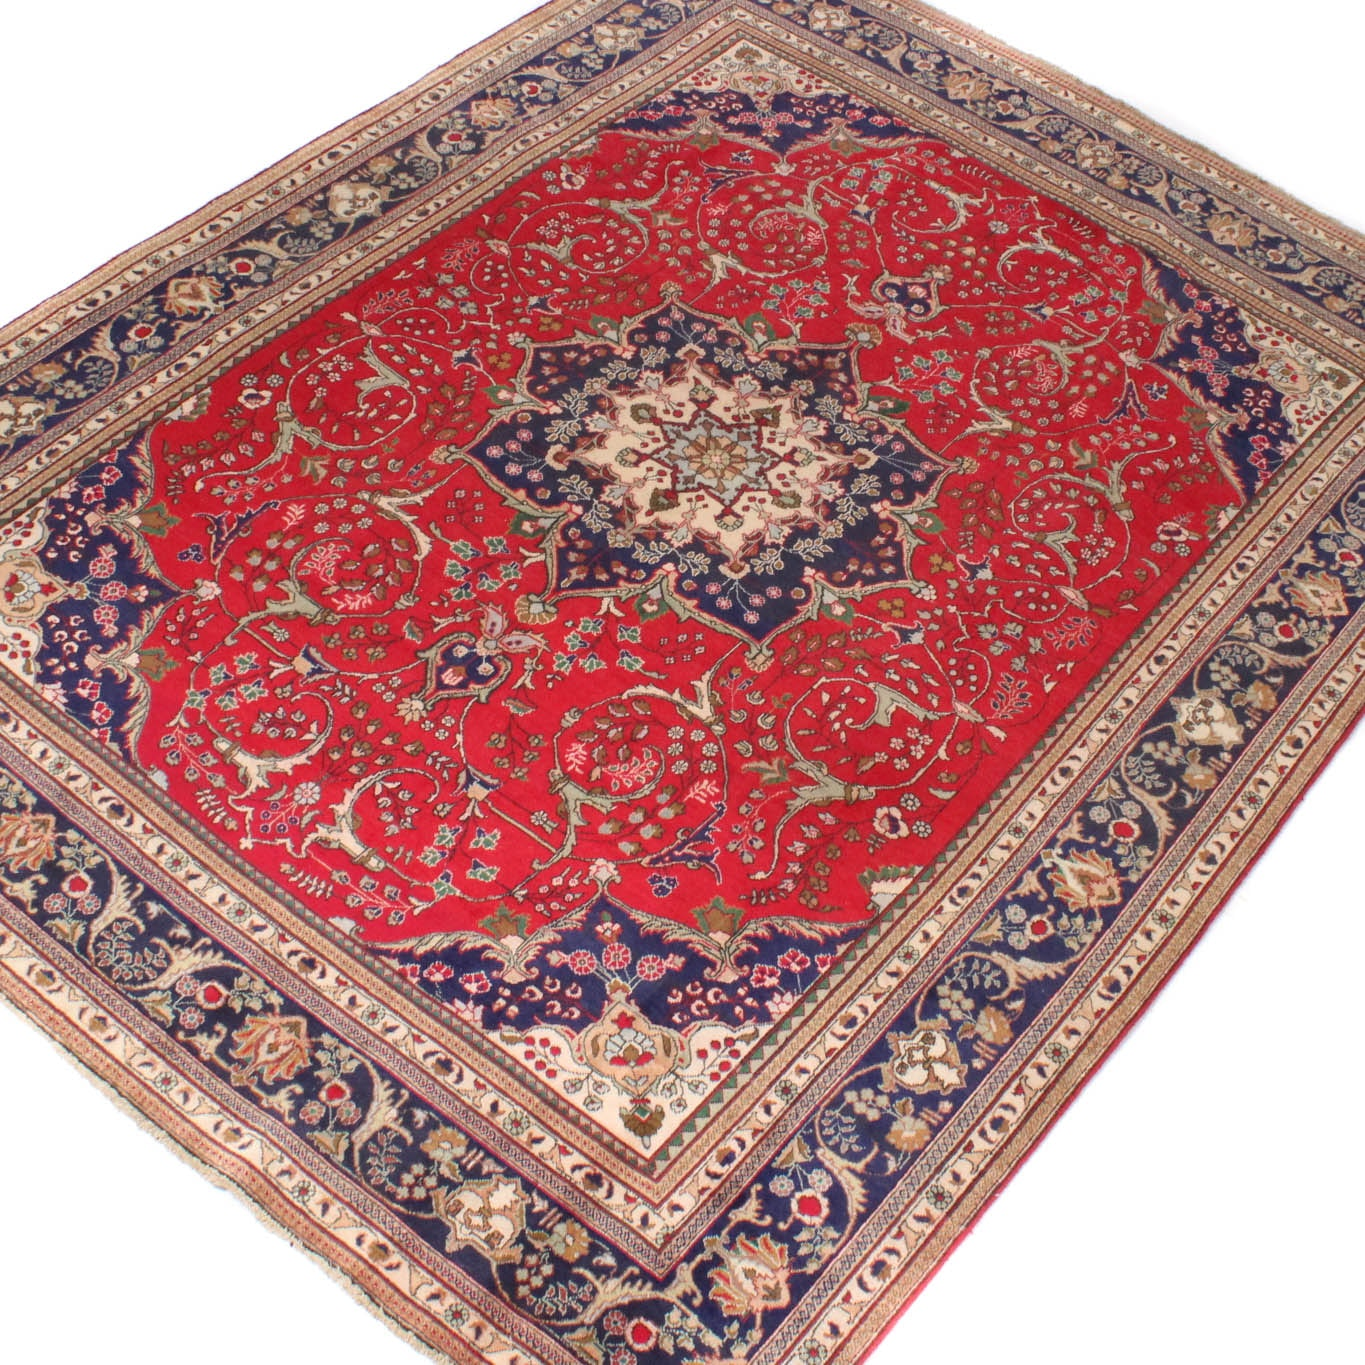 Vintage Hand-Knotted Persian Qum Rug